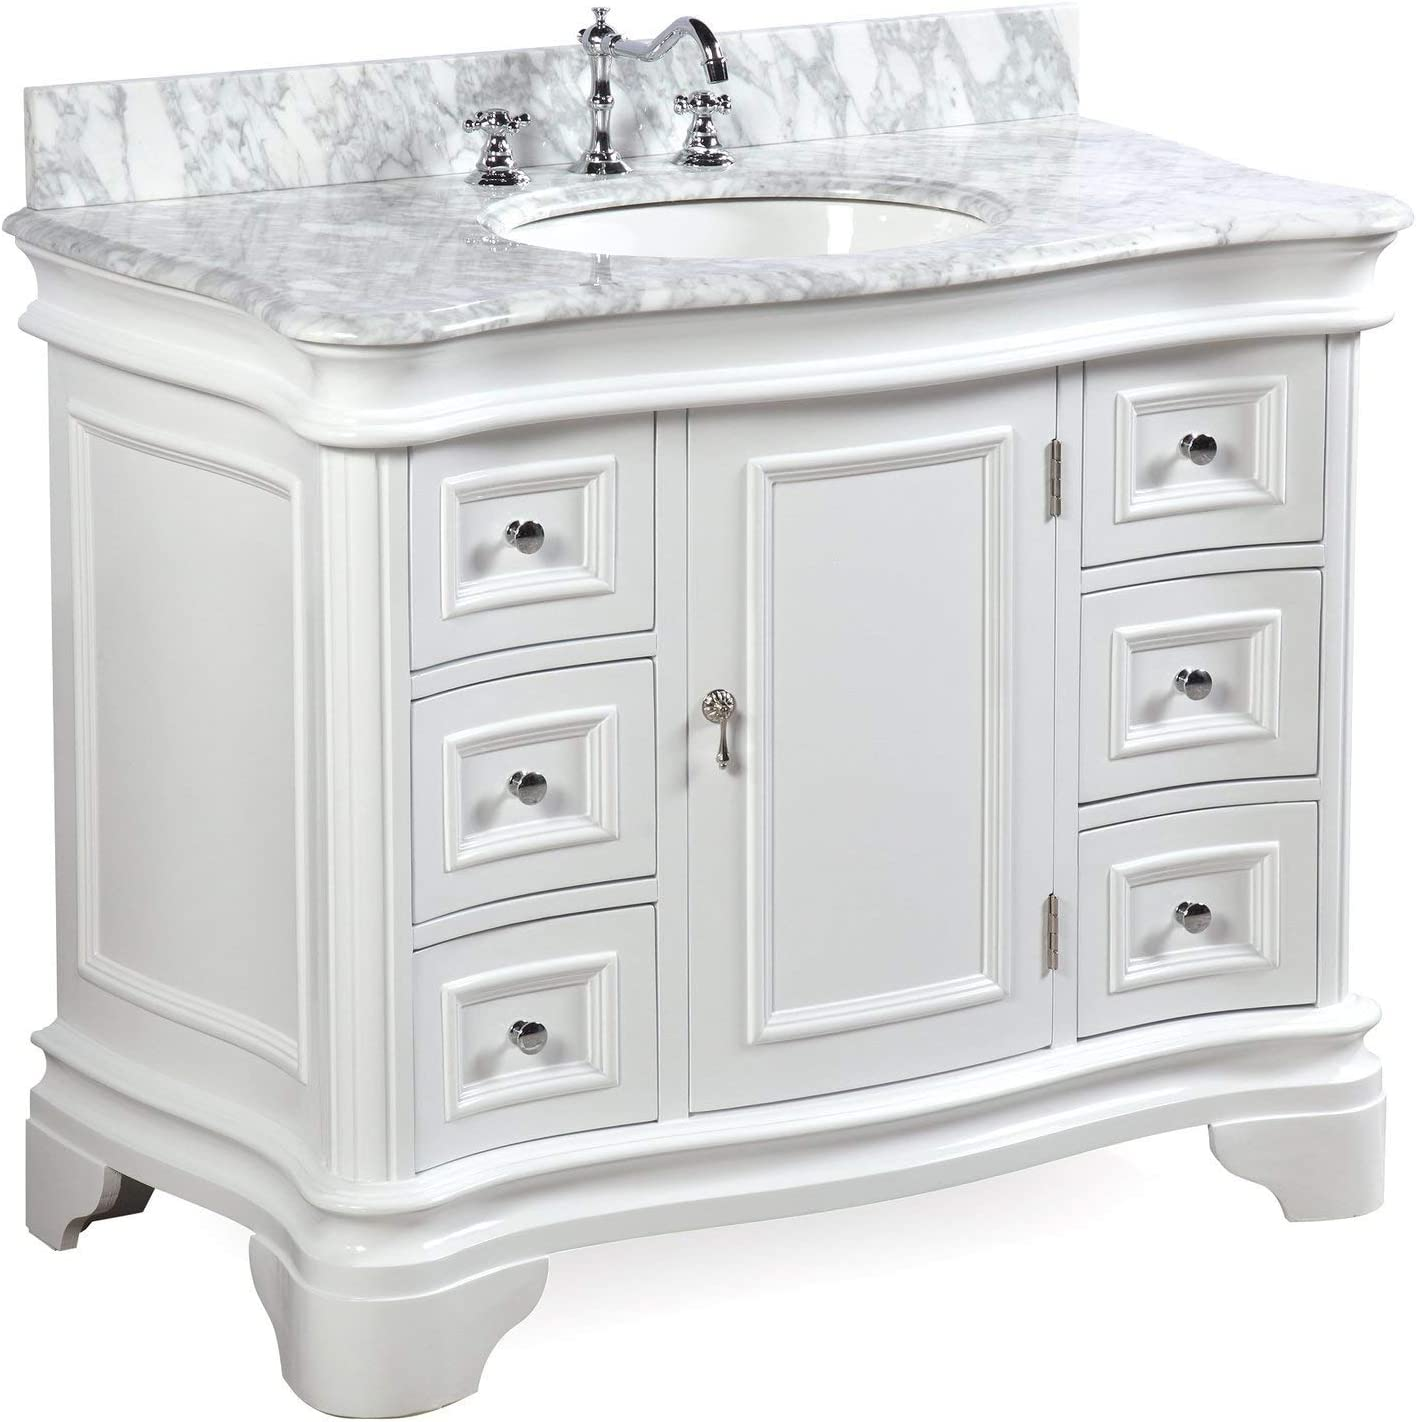 Amazon Com Katherine 42 Inch Bathroom Vanity Carrara White Includes White Cabinet With Authentic Italian Carrara Marble Countertop And White Ceramic Sink Furniture Decor